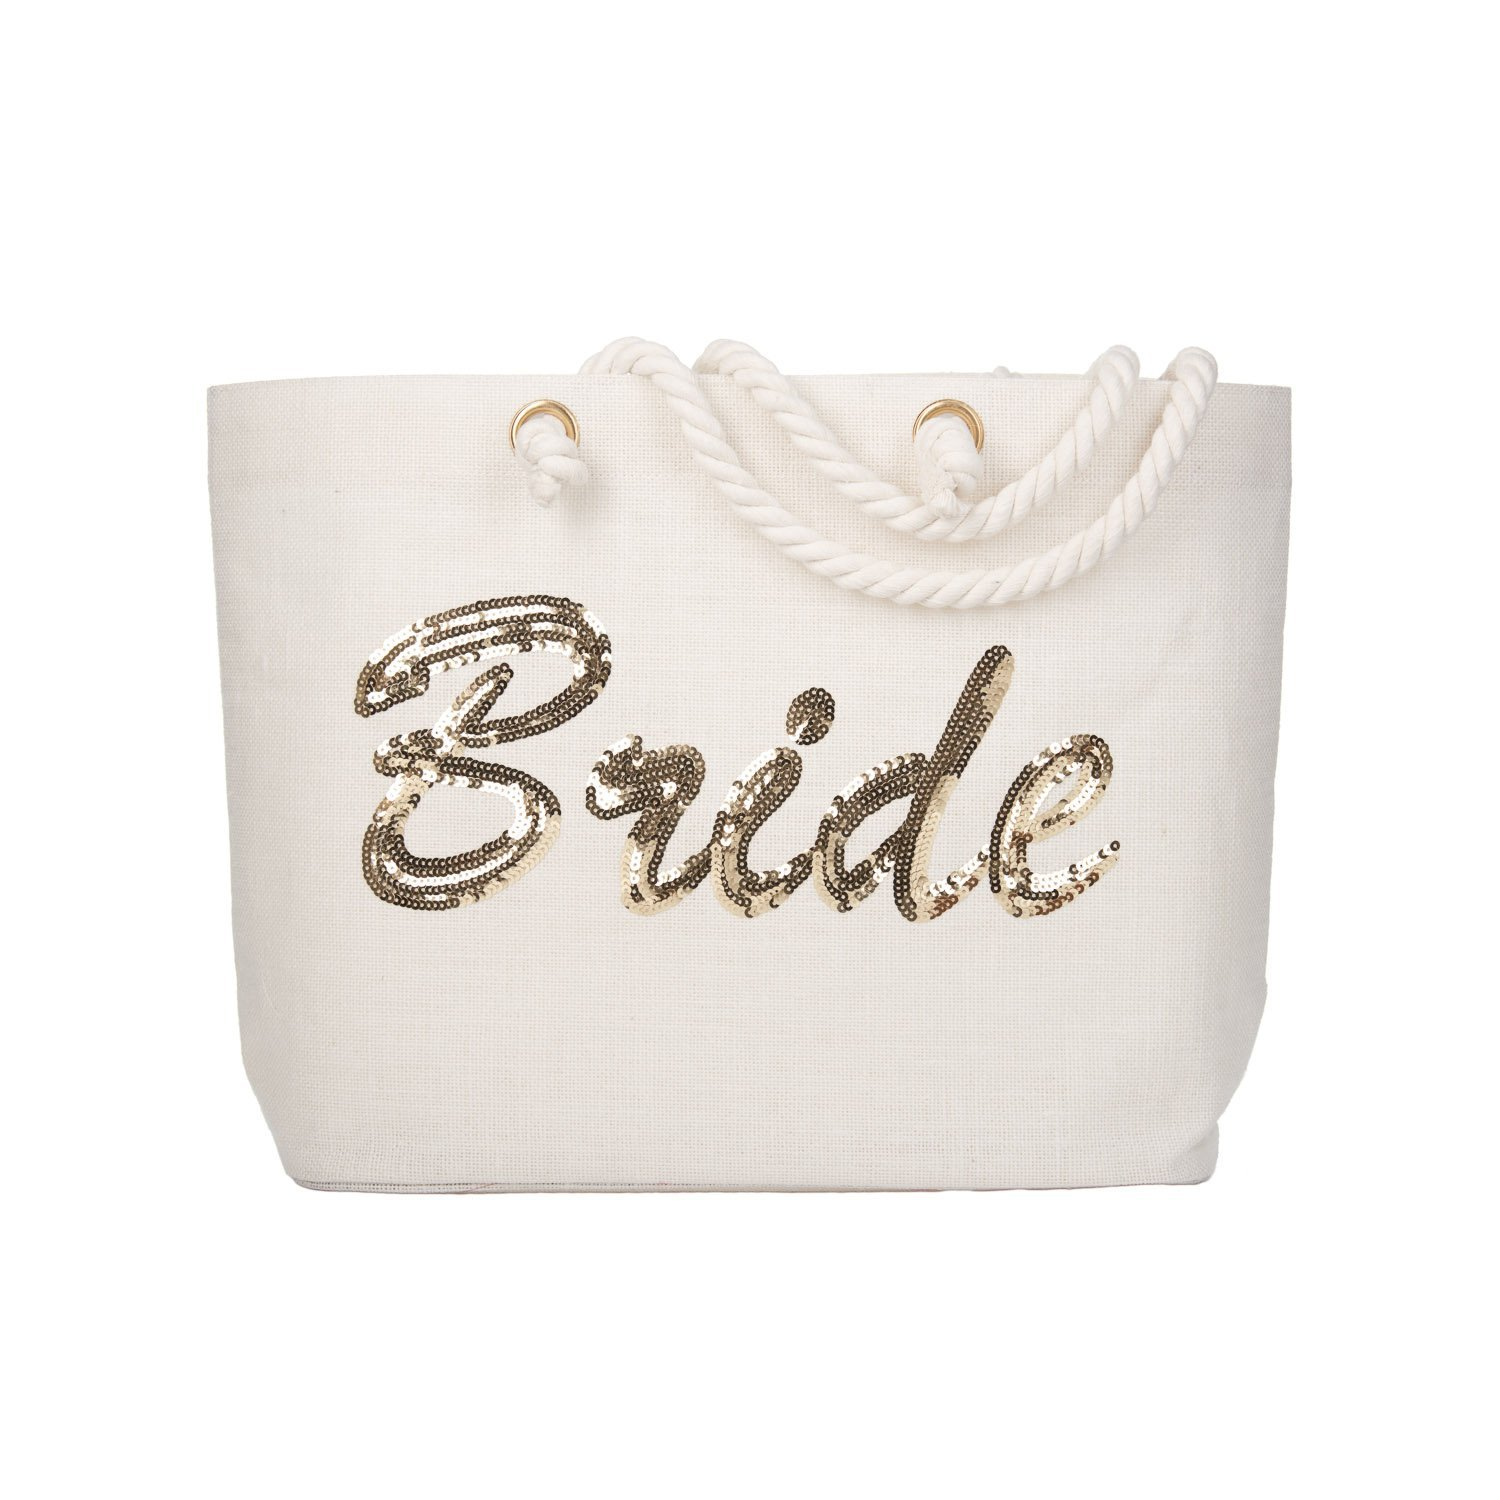 ElegantPark Bride Tote Bag Gold Sequin Wedding Bridal Shower Bachelorette Gift